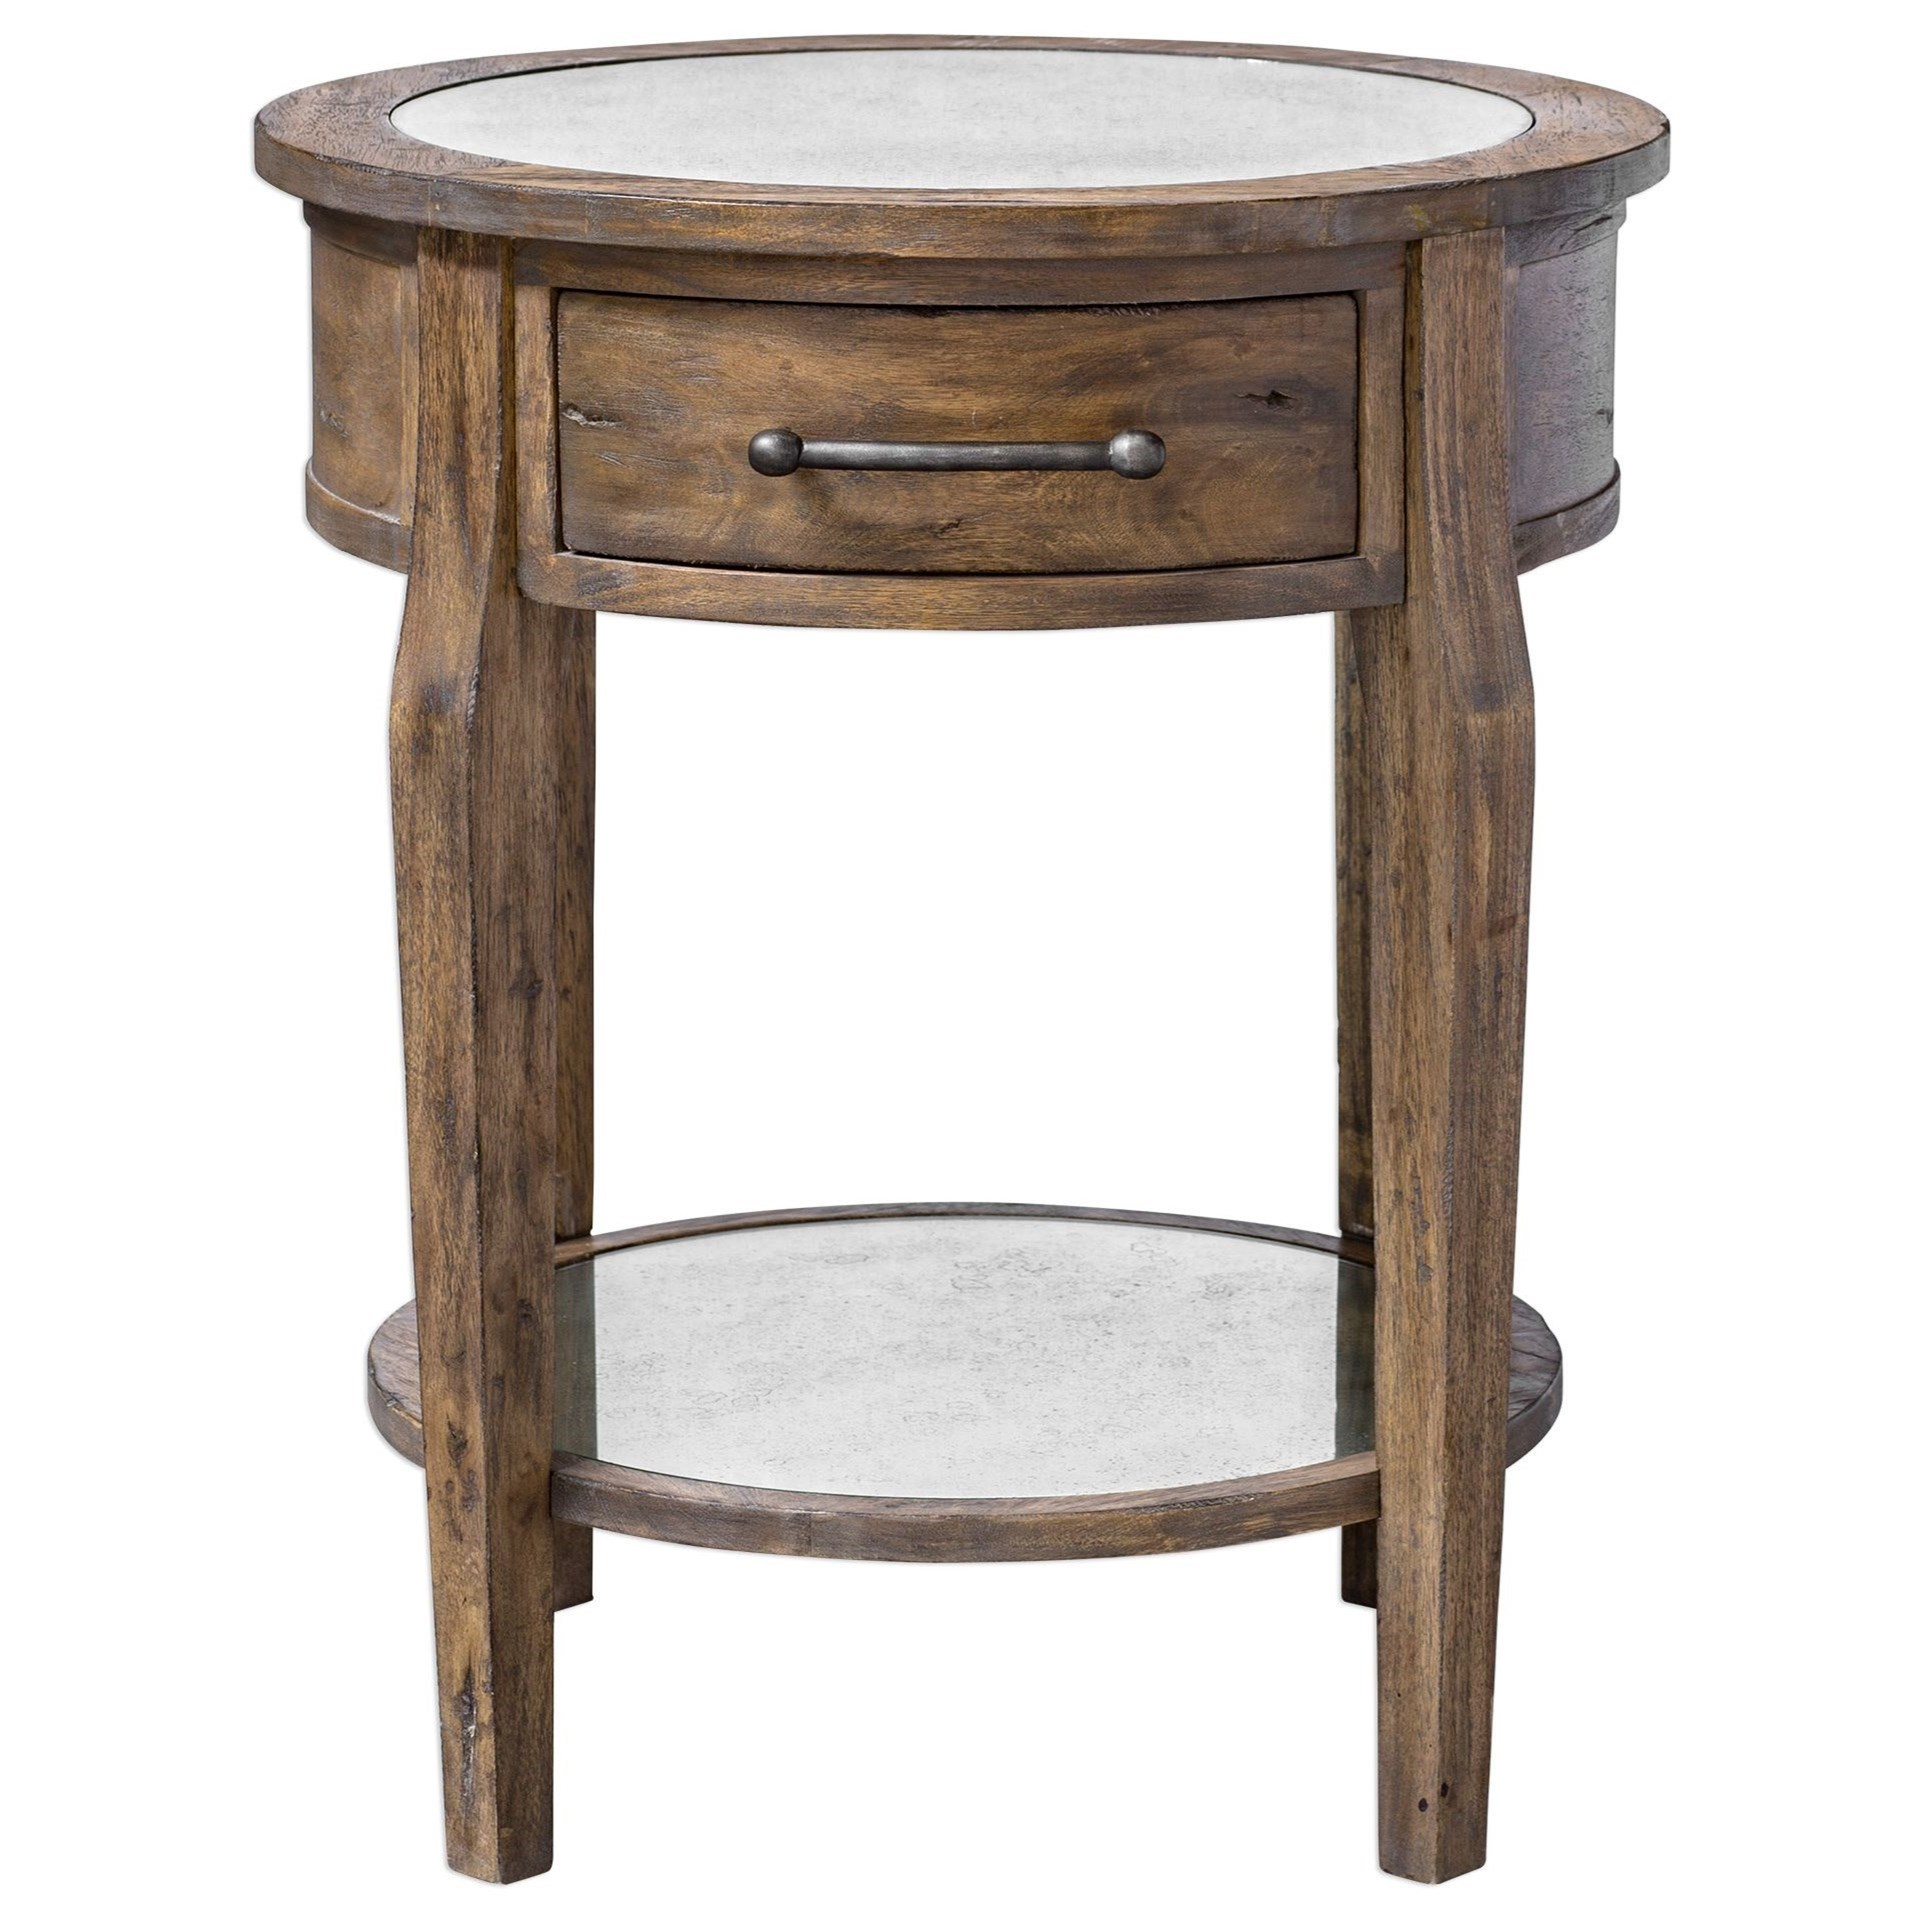 Accent Furniture - Occasional Tables Raelynn Wood Lamp Table by Uttermost at Goffena Furniture & Mattress Center